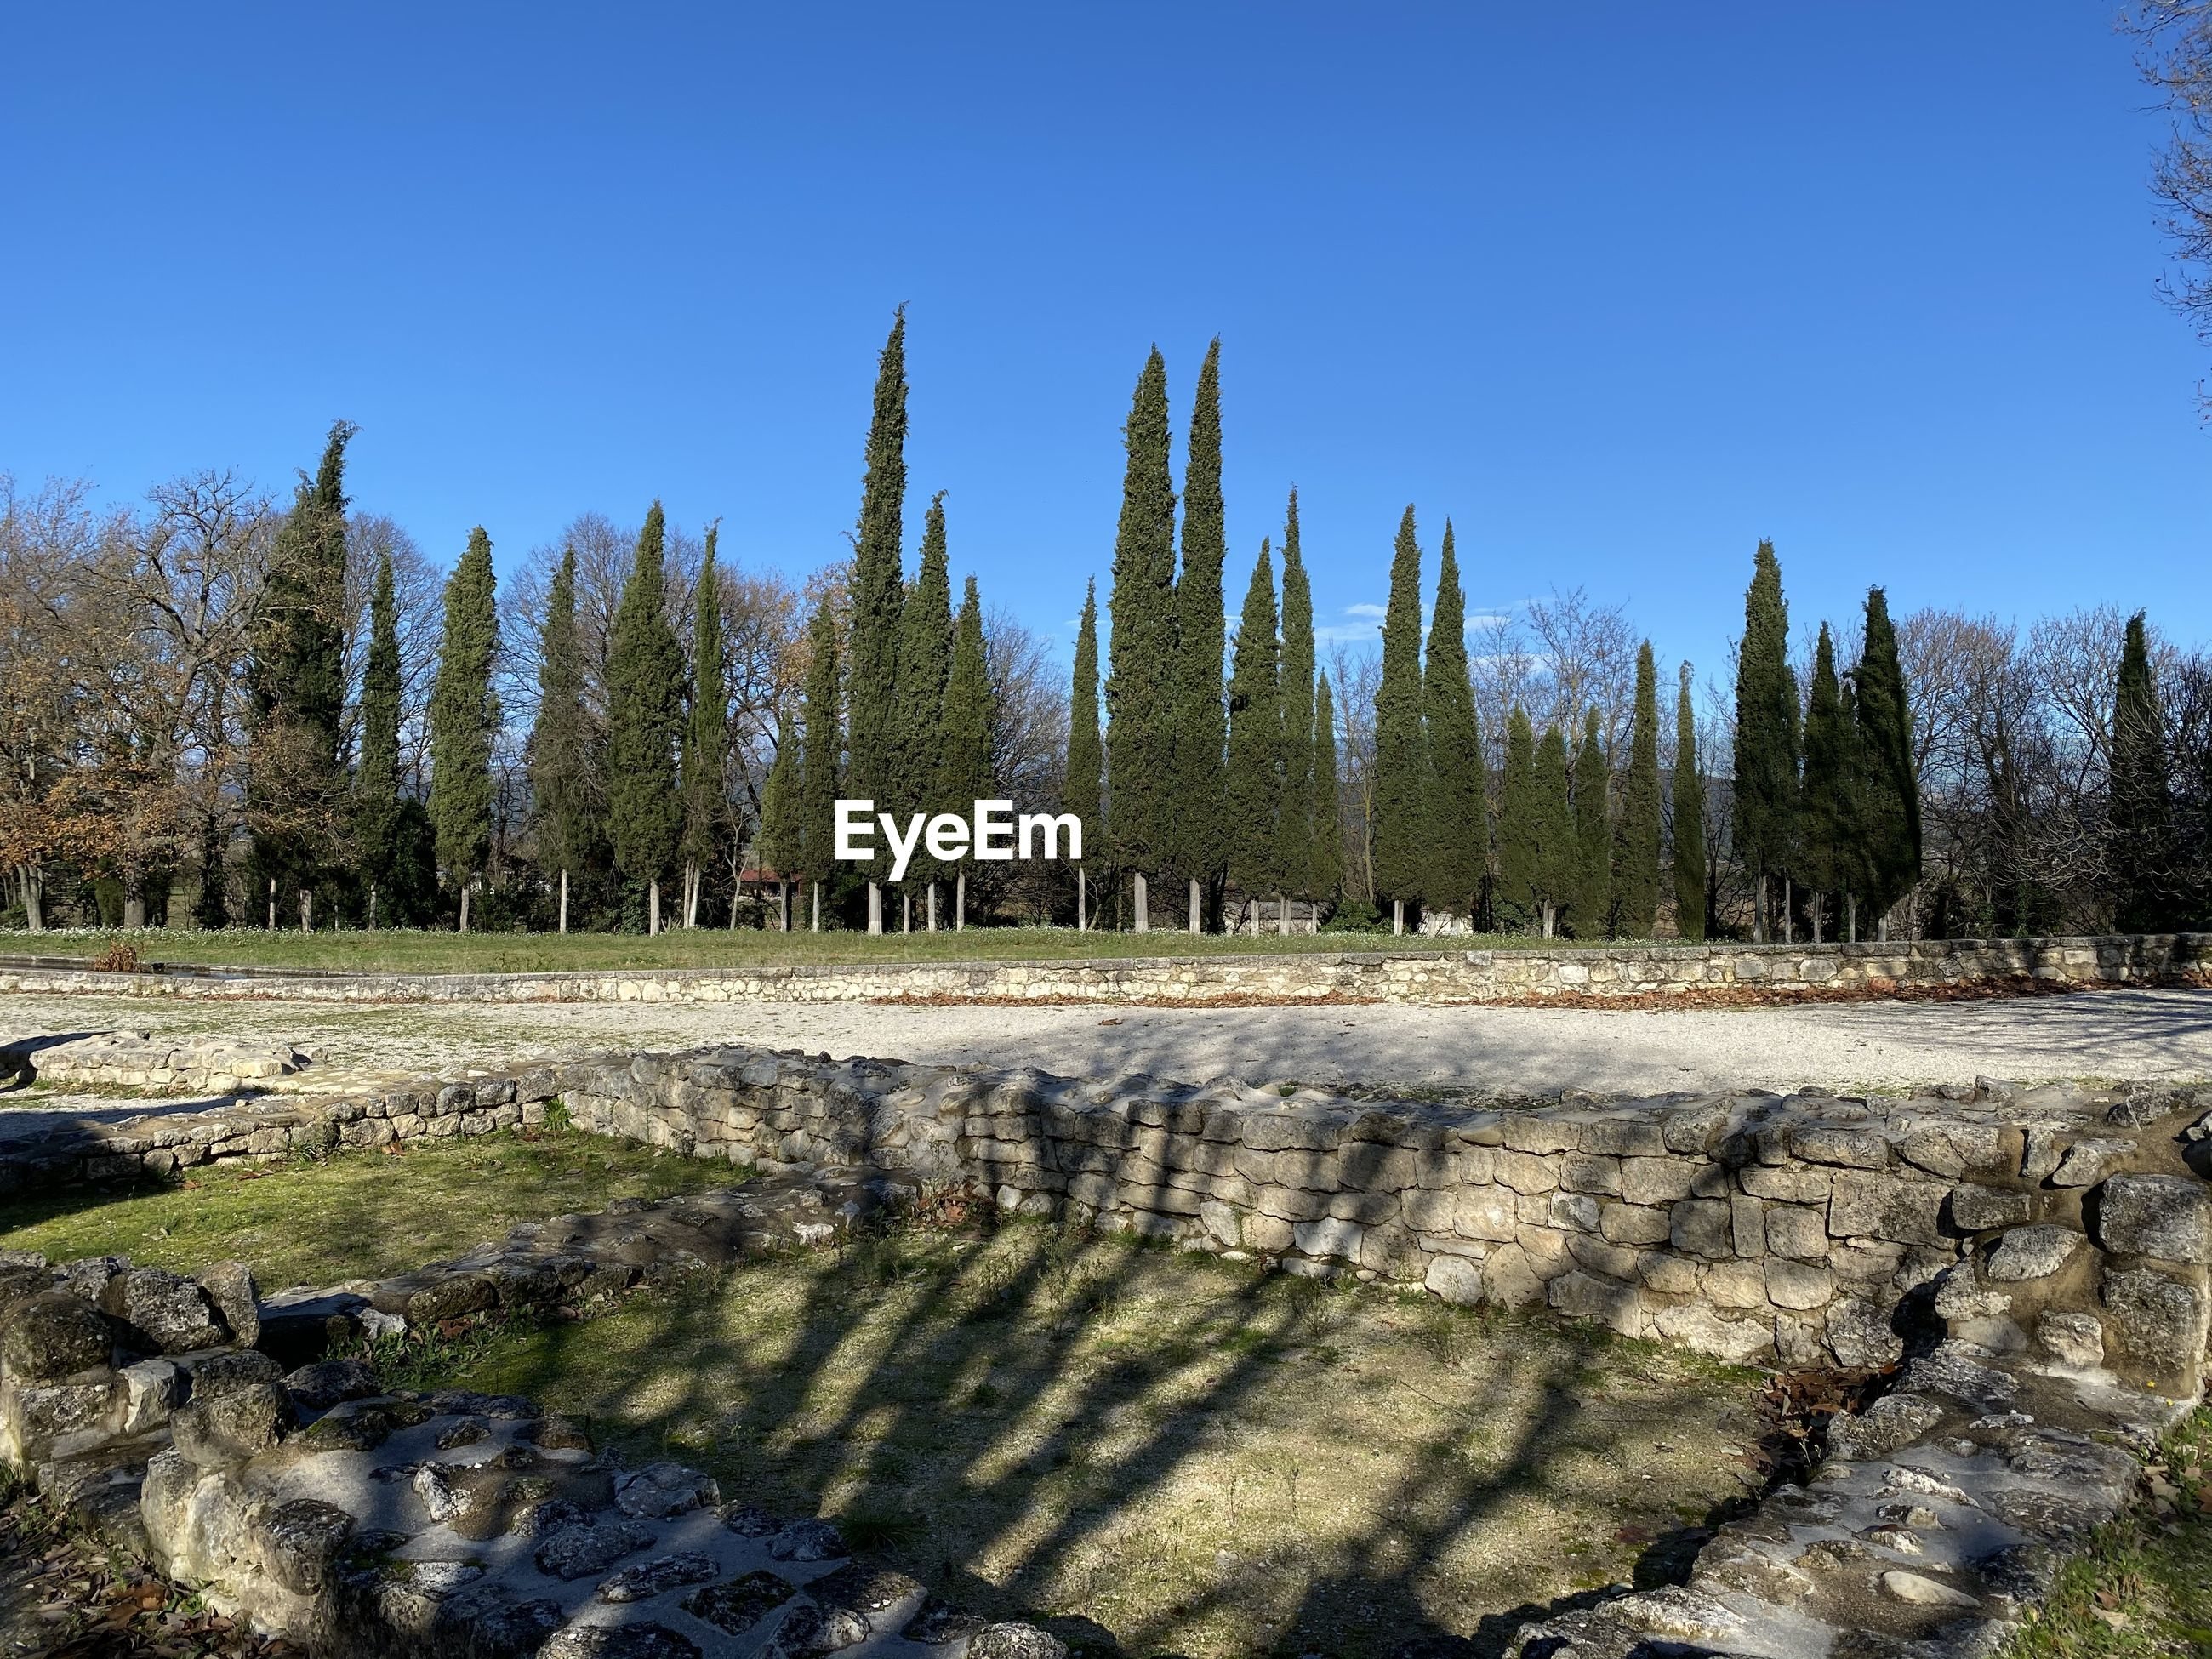 PANORAMIC SHOT OF TREES AGAINST CLEAR SKY